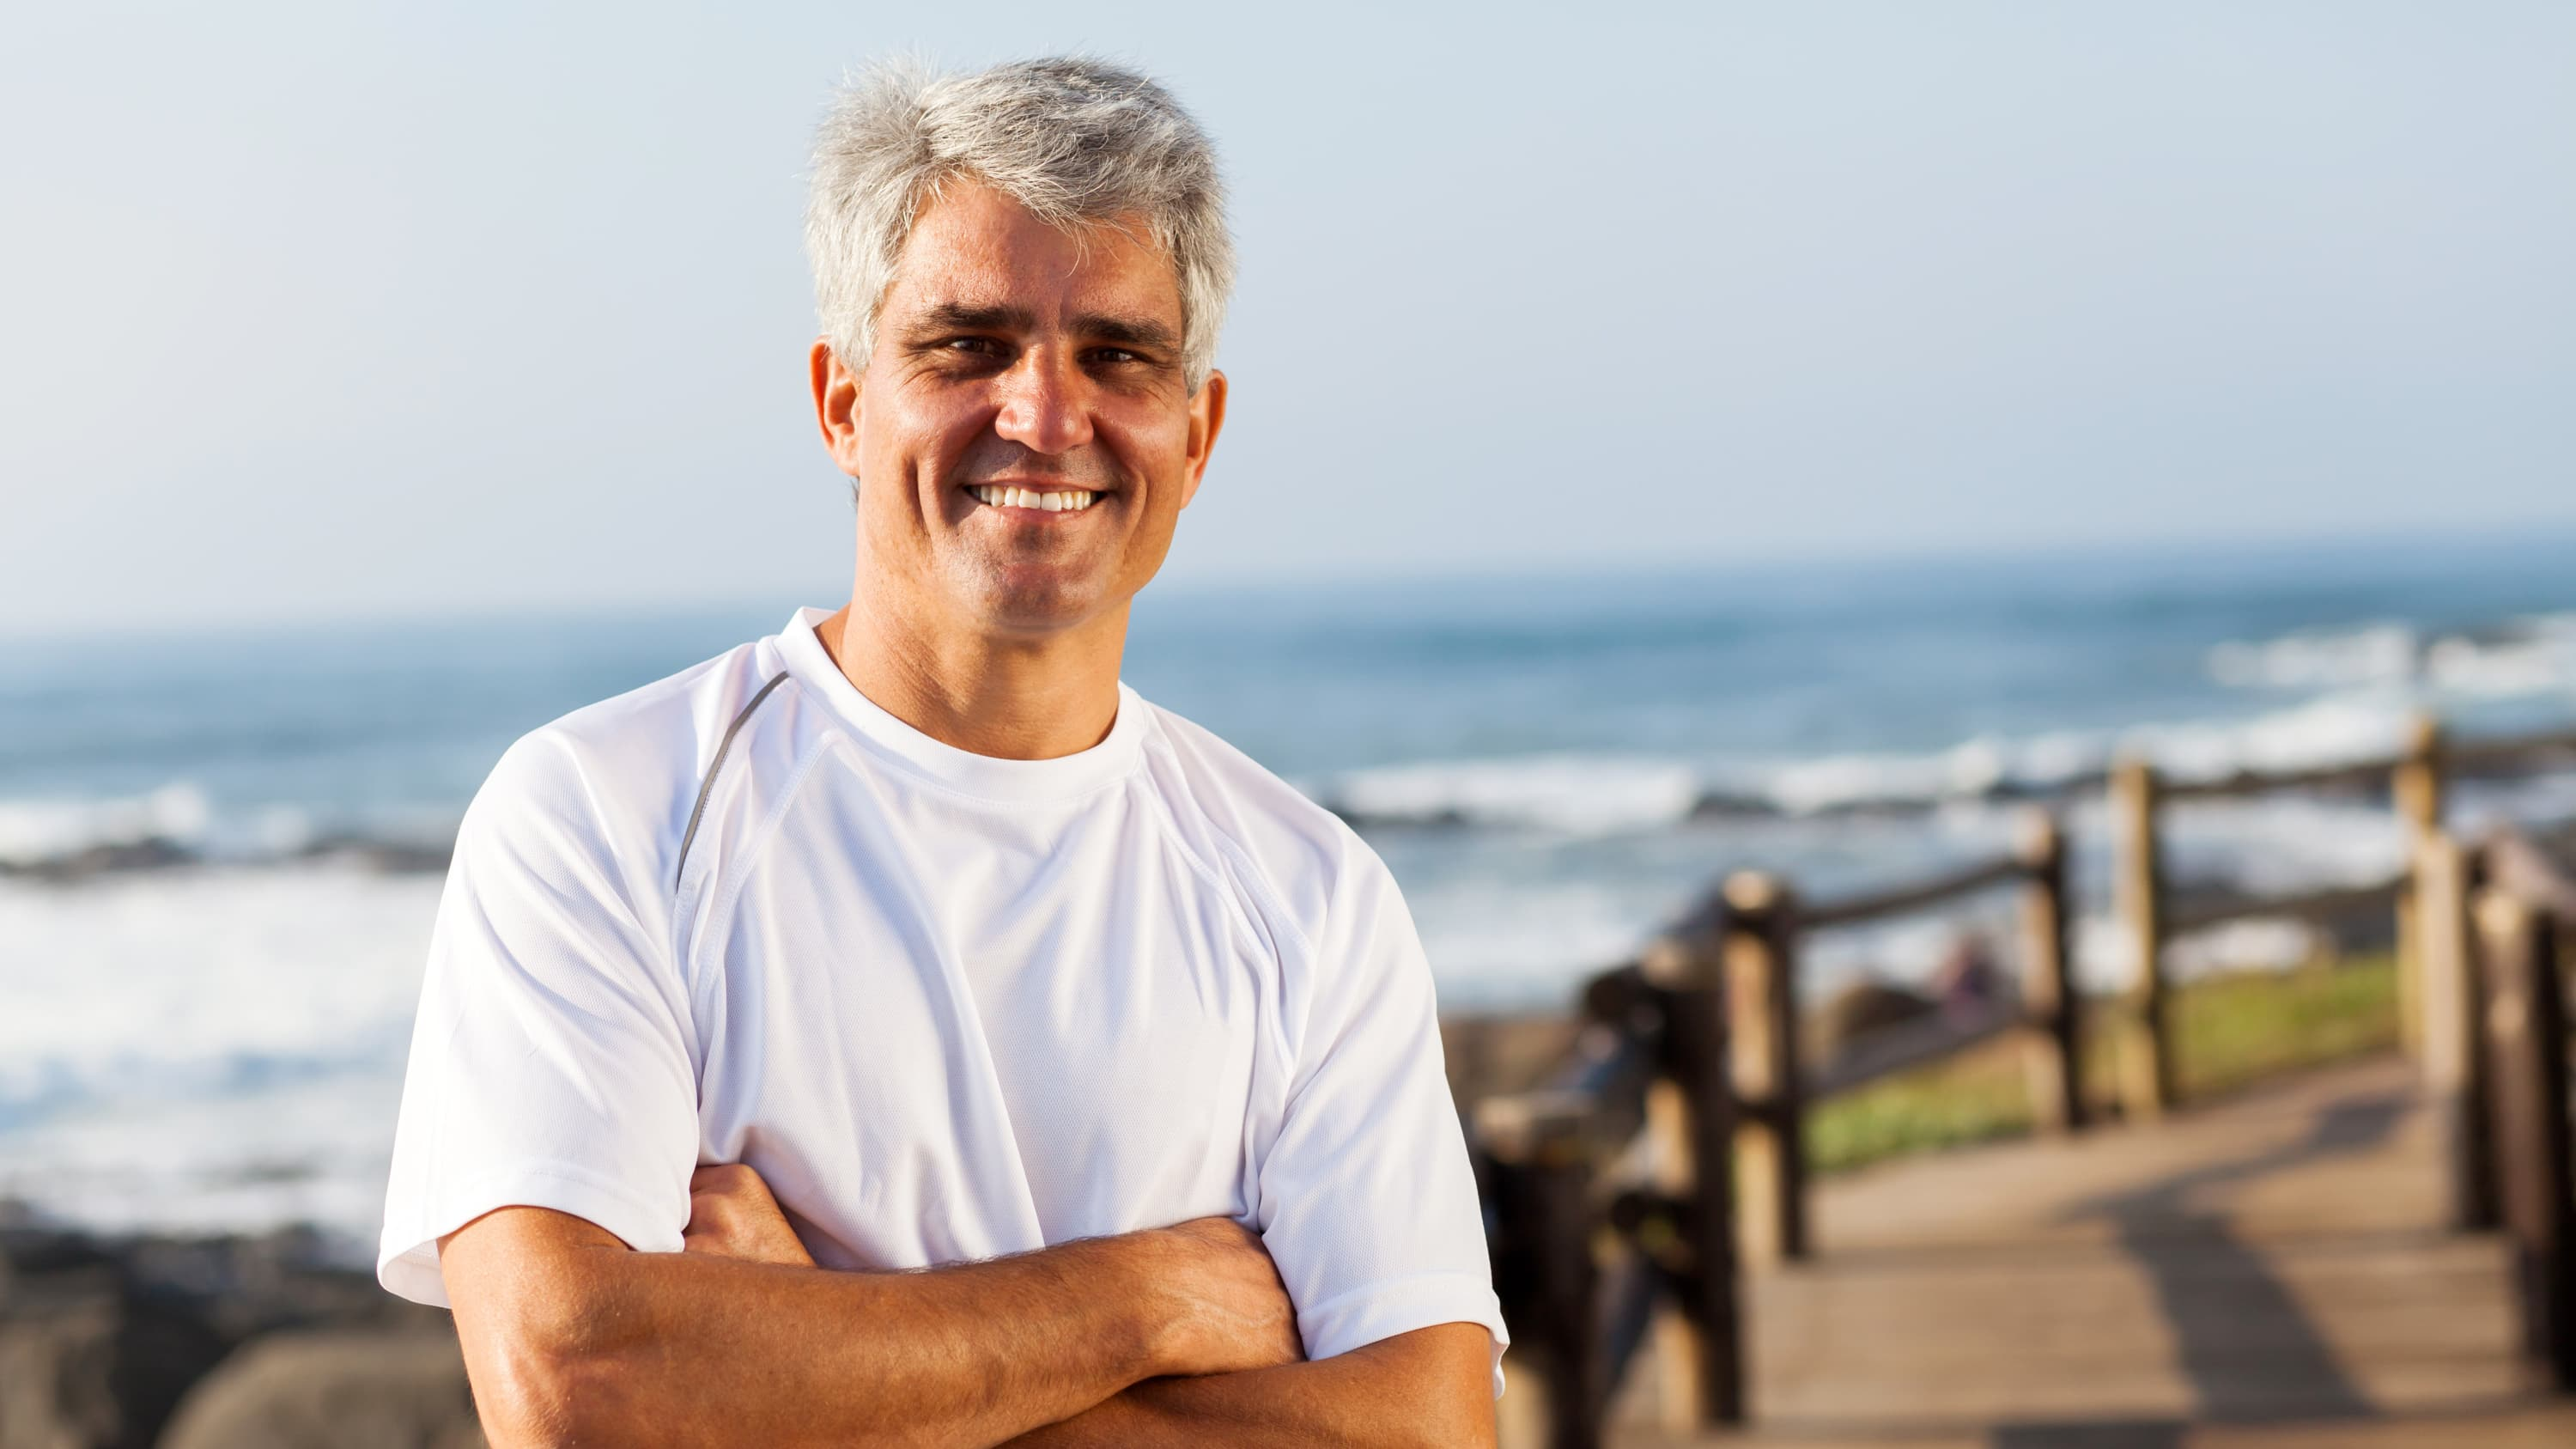 Man with gray hair in a white T-shirt stands on a boardwalk smiling, possibly because of successful cancer surgery